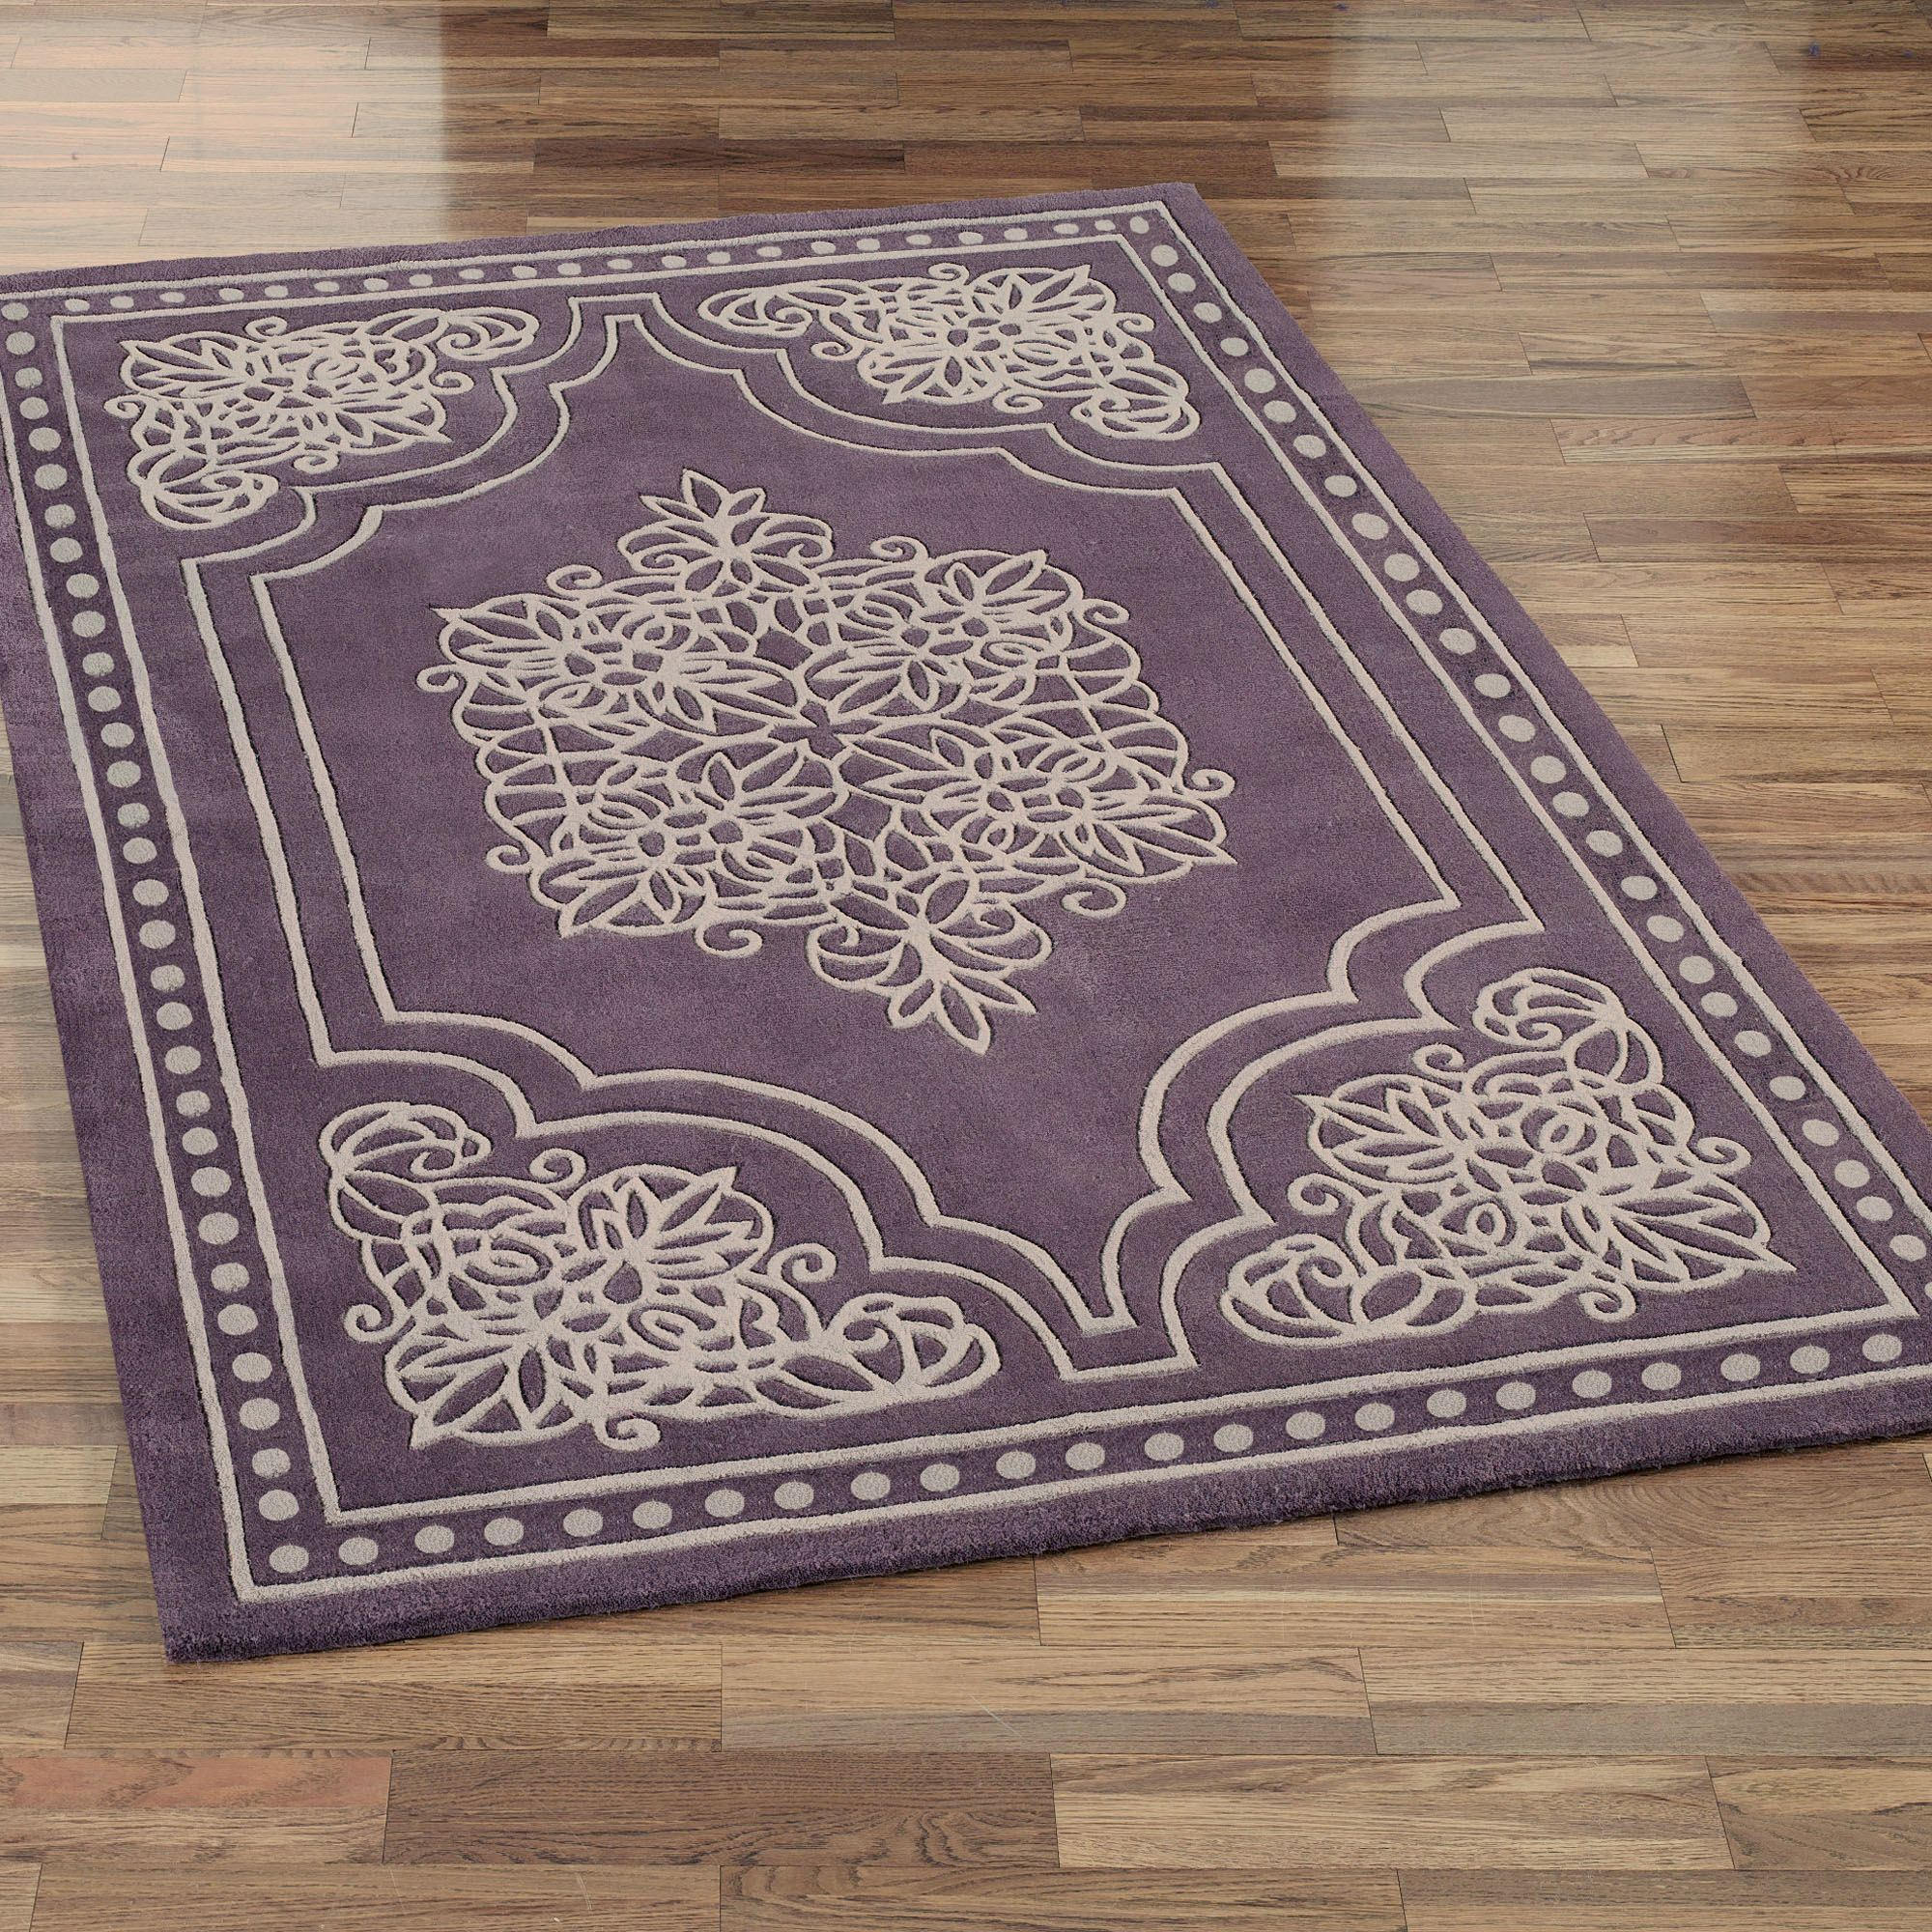 of uk x graphics rug art area best round elegant irugs home photos multi improvement casablanca rugs